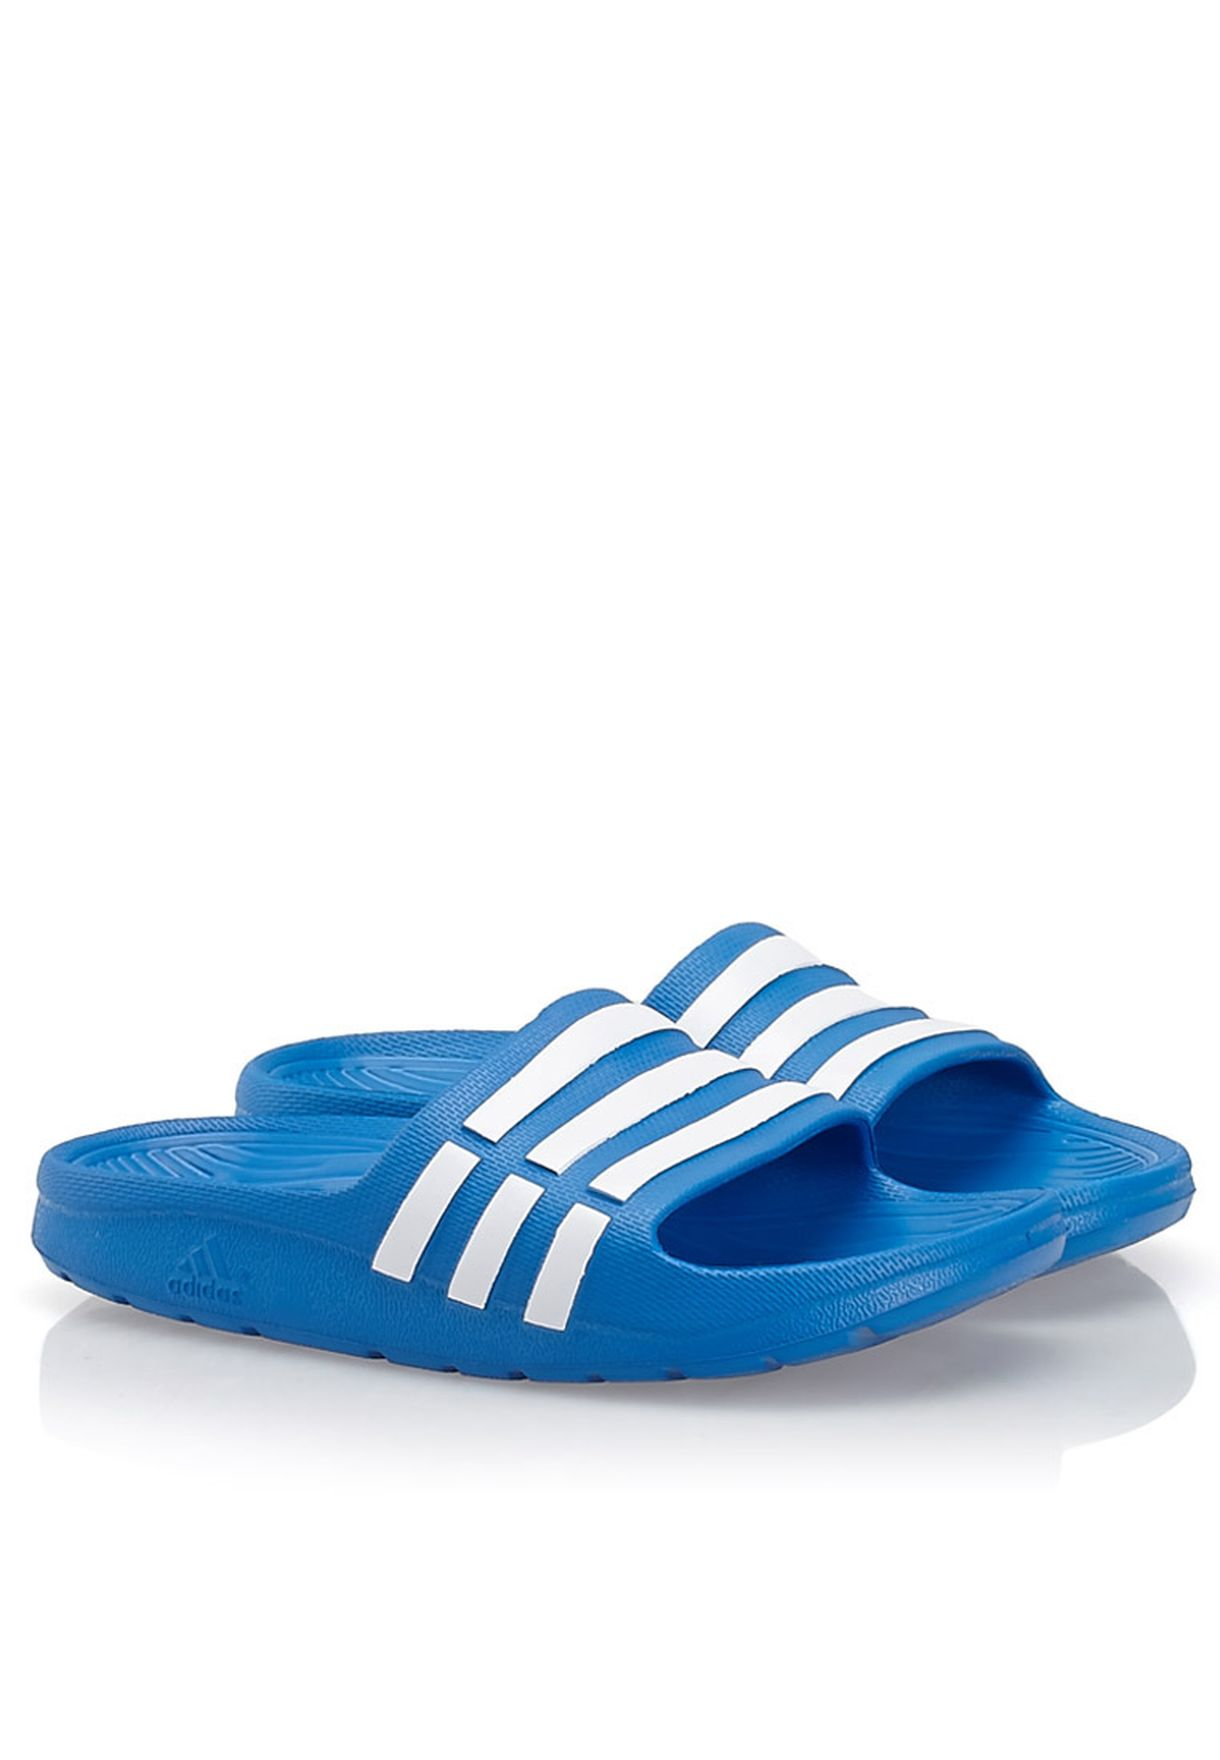 0e921ddb2 Shop adidas blue Duramo Slides D67479 for Kids in Qatar - AD476SH80JIX